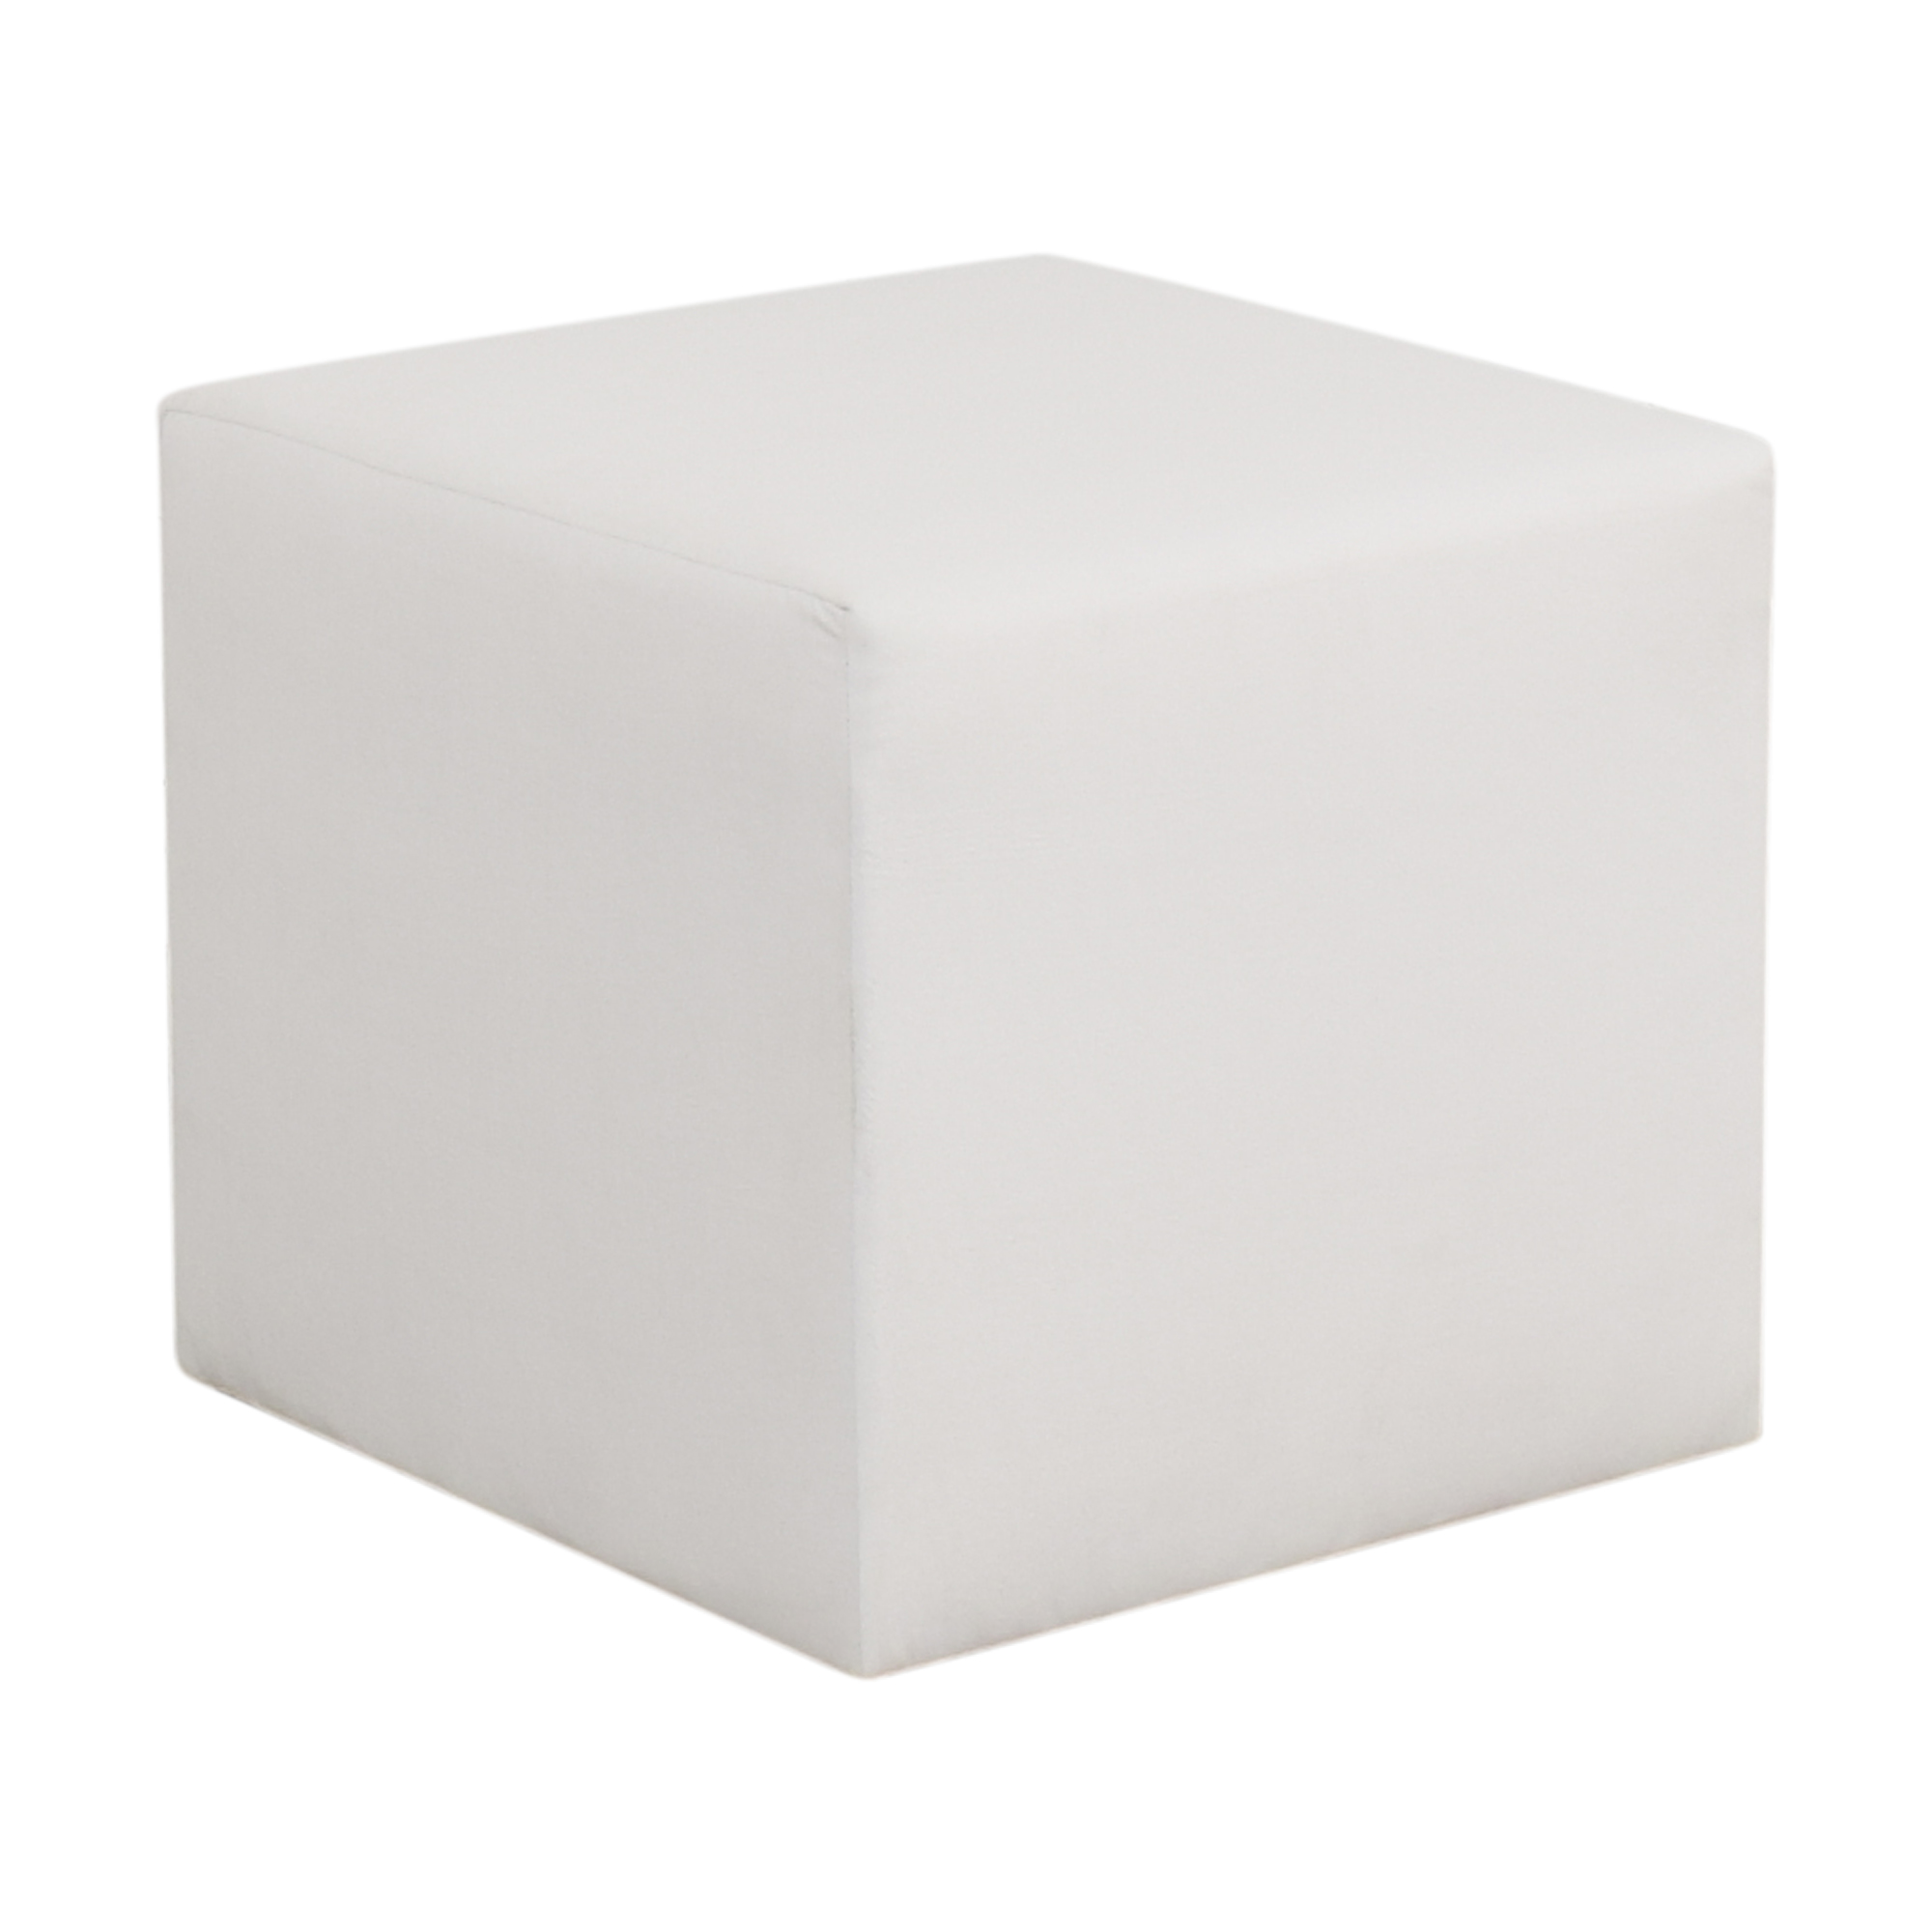 The Inside Cube Ottoman / Chairs